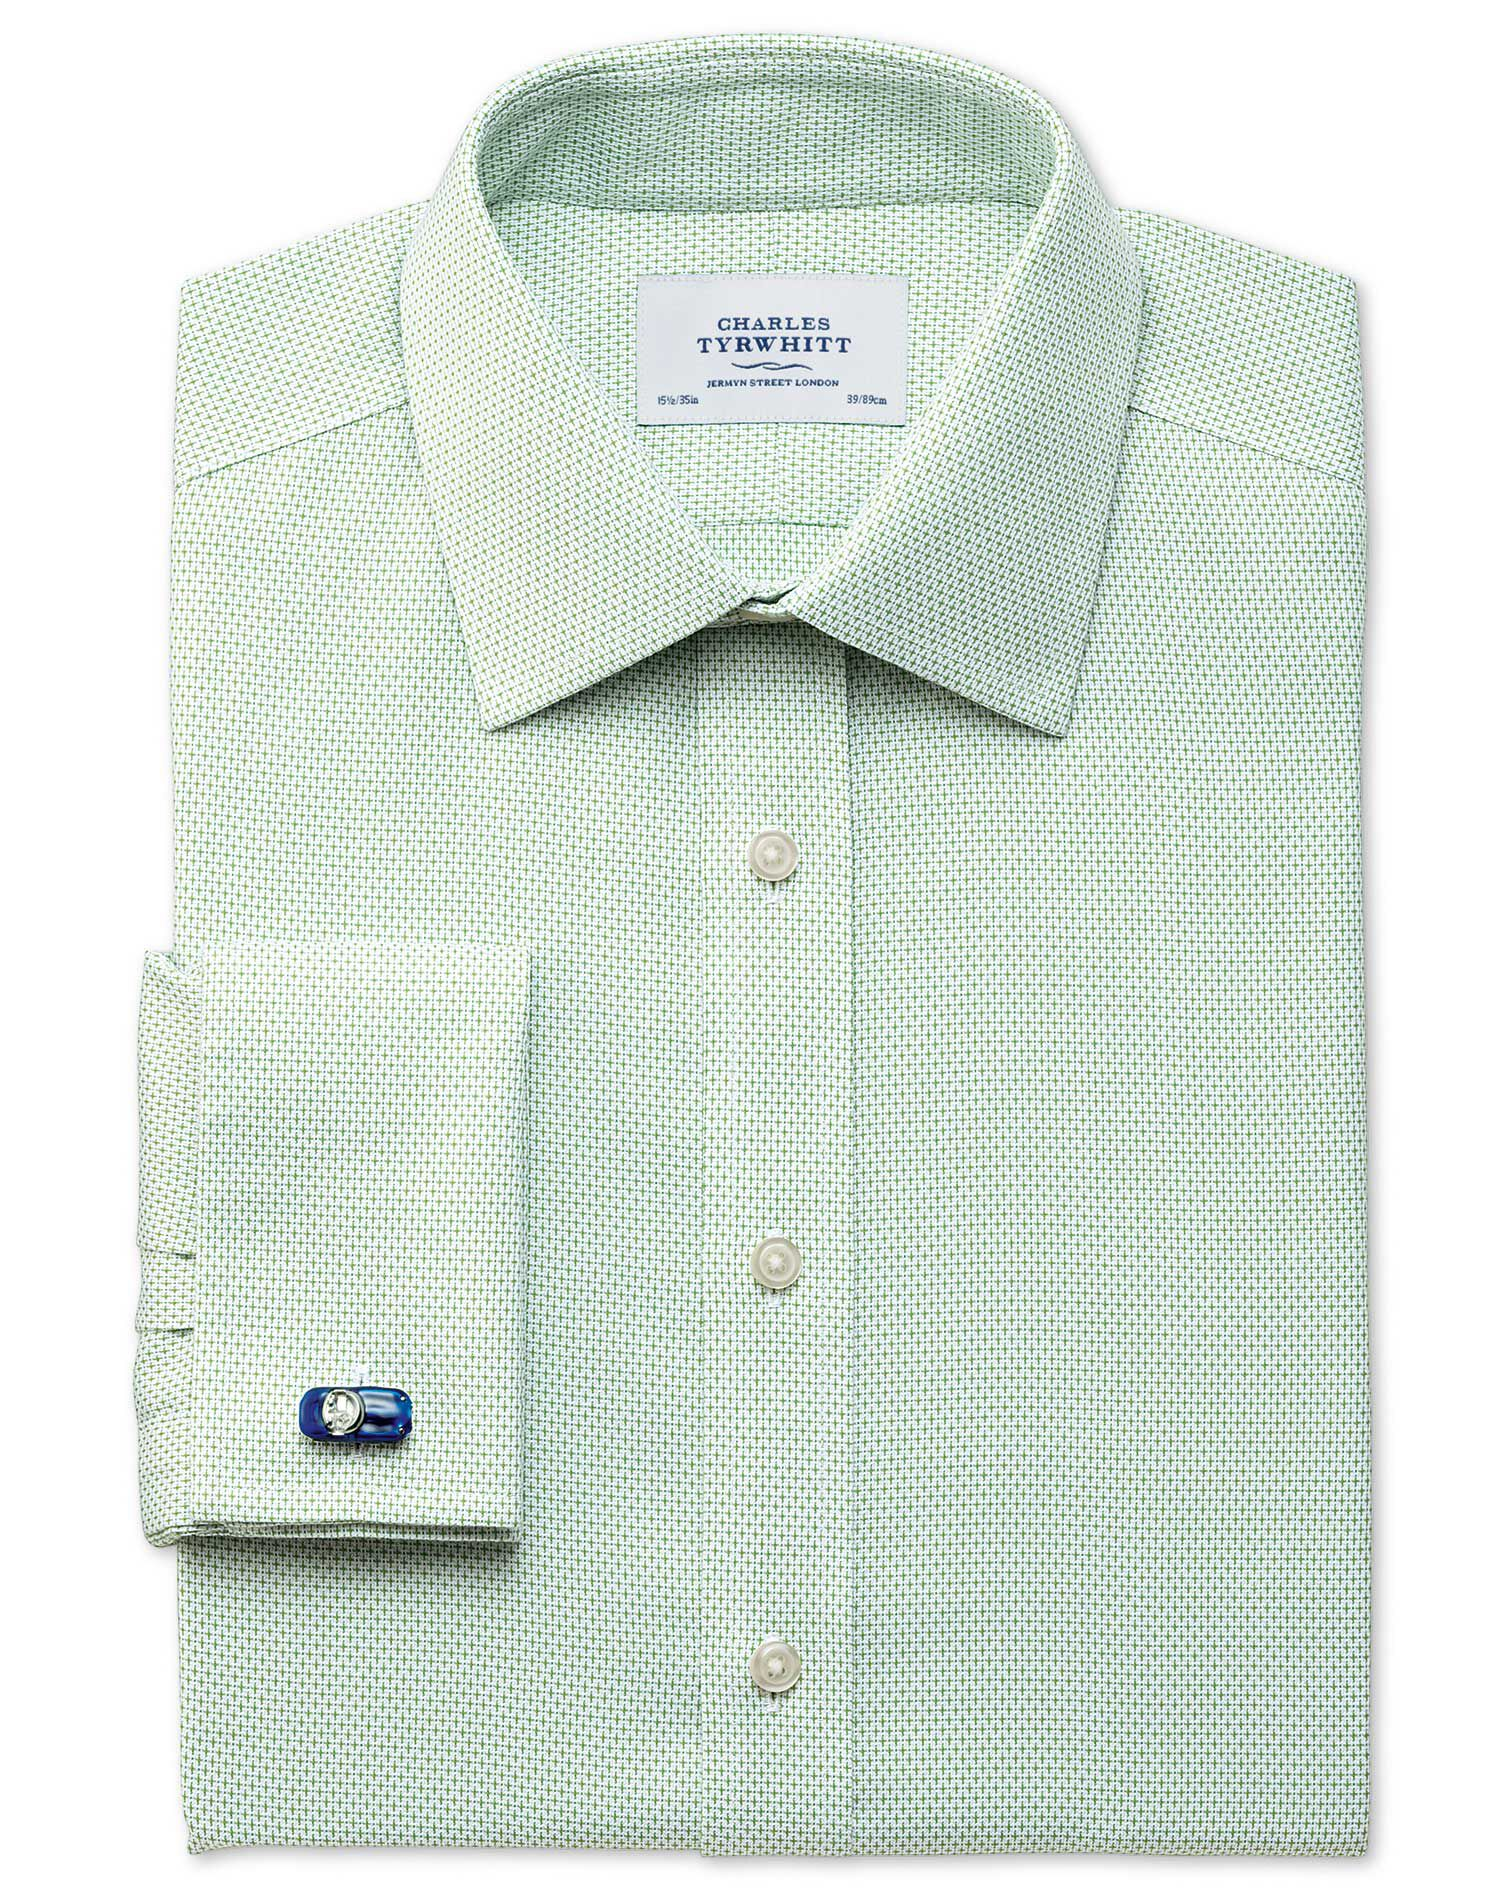 Slim Fit Non-Iron Imperial Weave Light Green Cotton Formal Shirt Double Cuff Size 17/37 by Charles T